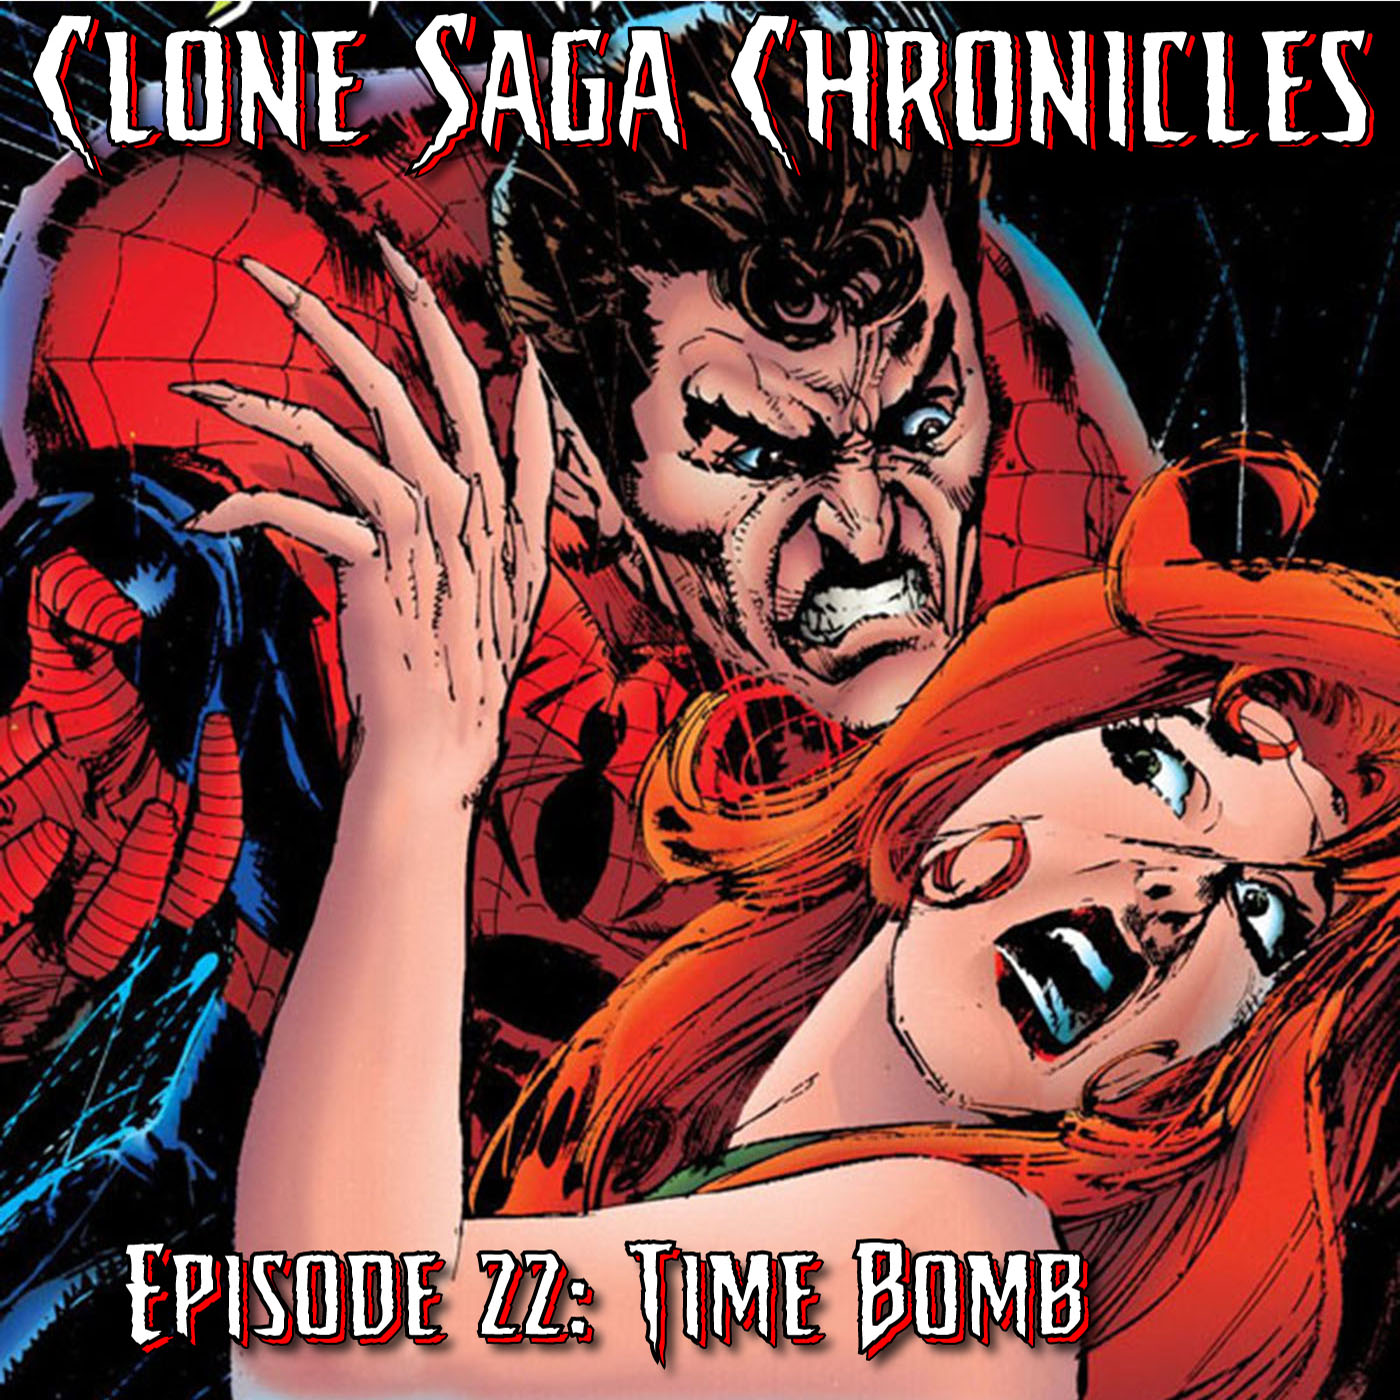 CSC Episode 22: Time Bomb (Cover Date: Sept/Oct 1995)